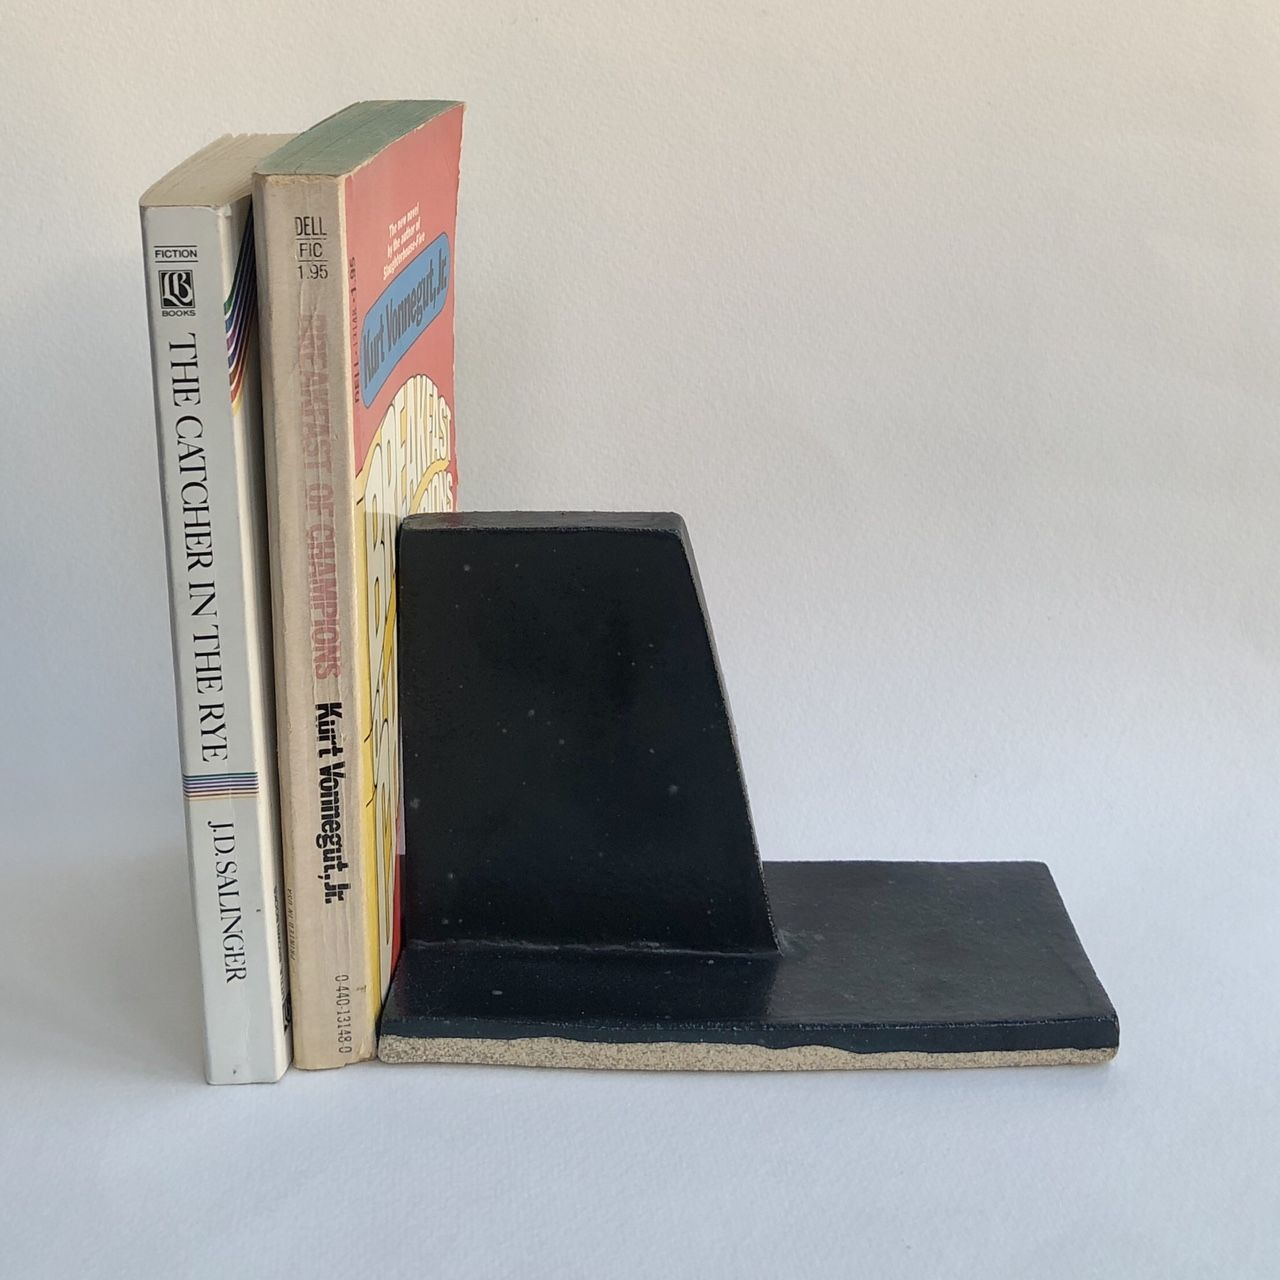 Pin By Rebex On Ceramik Stuff Bookends Ceramics High Fire